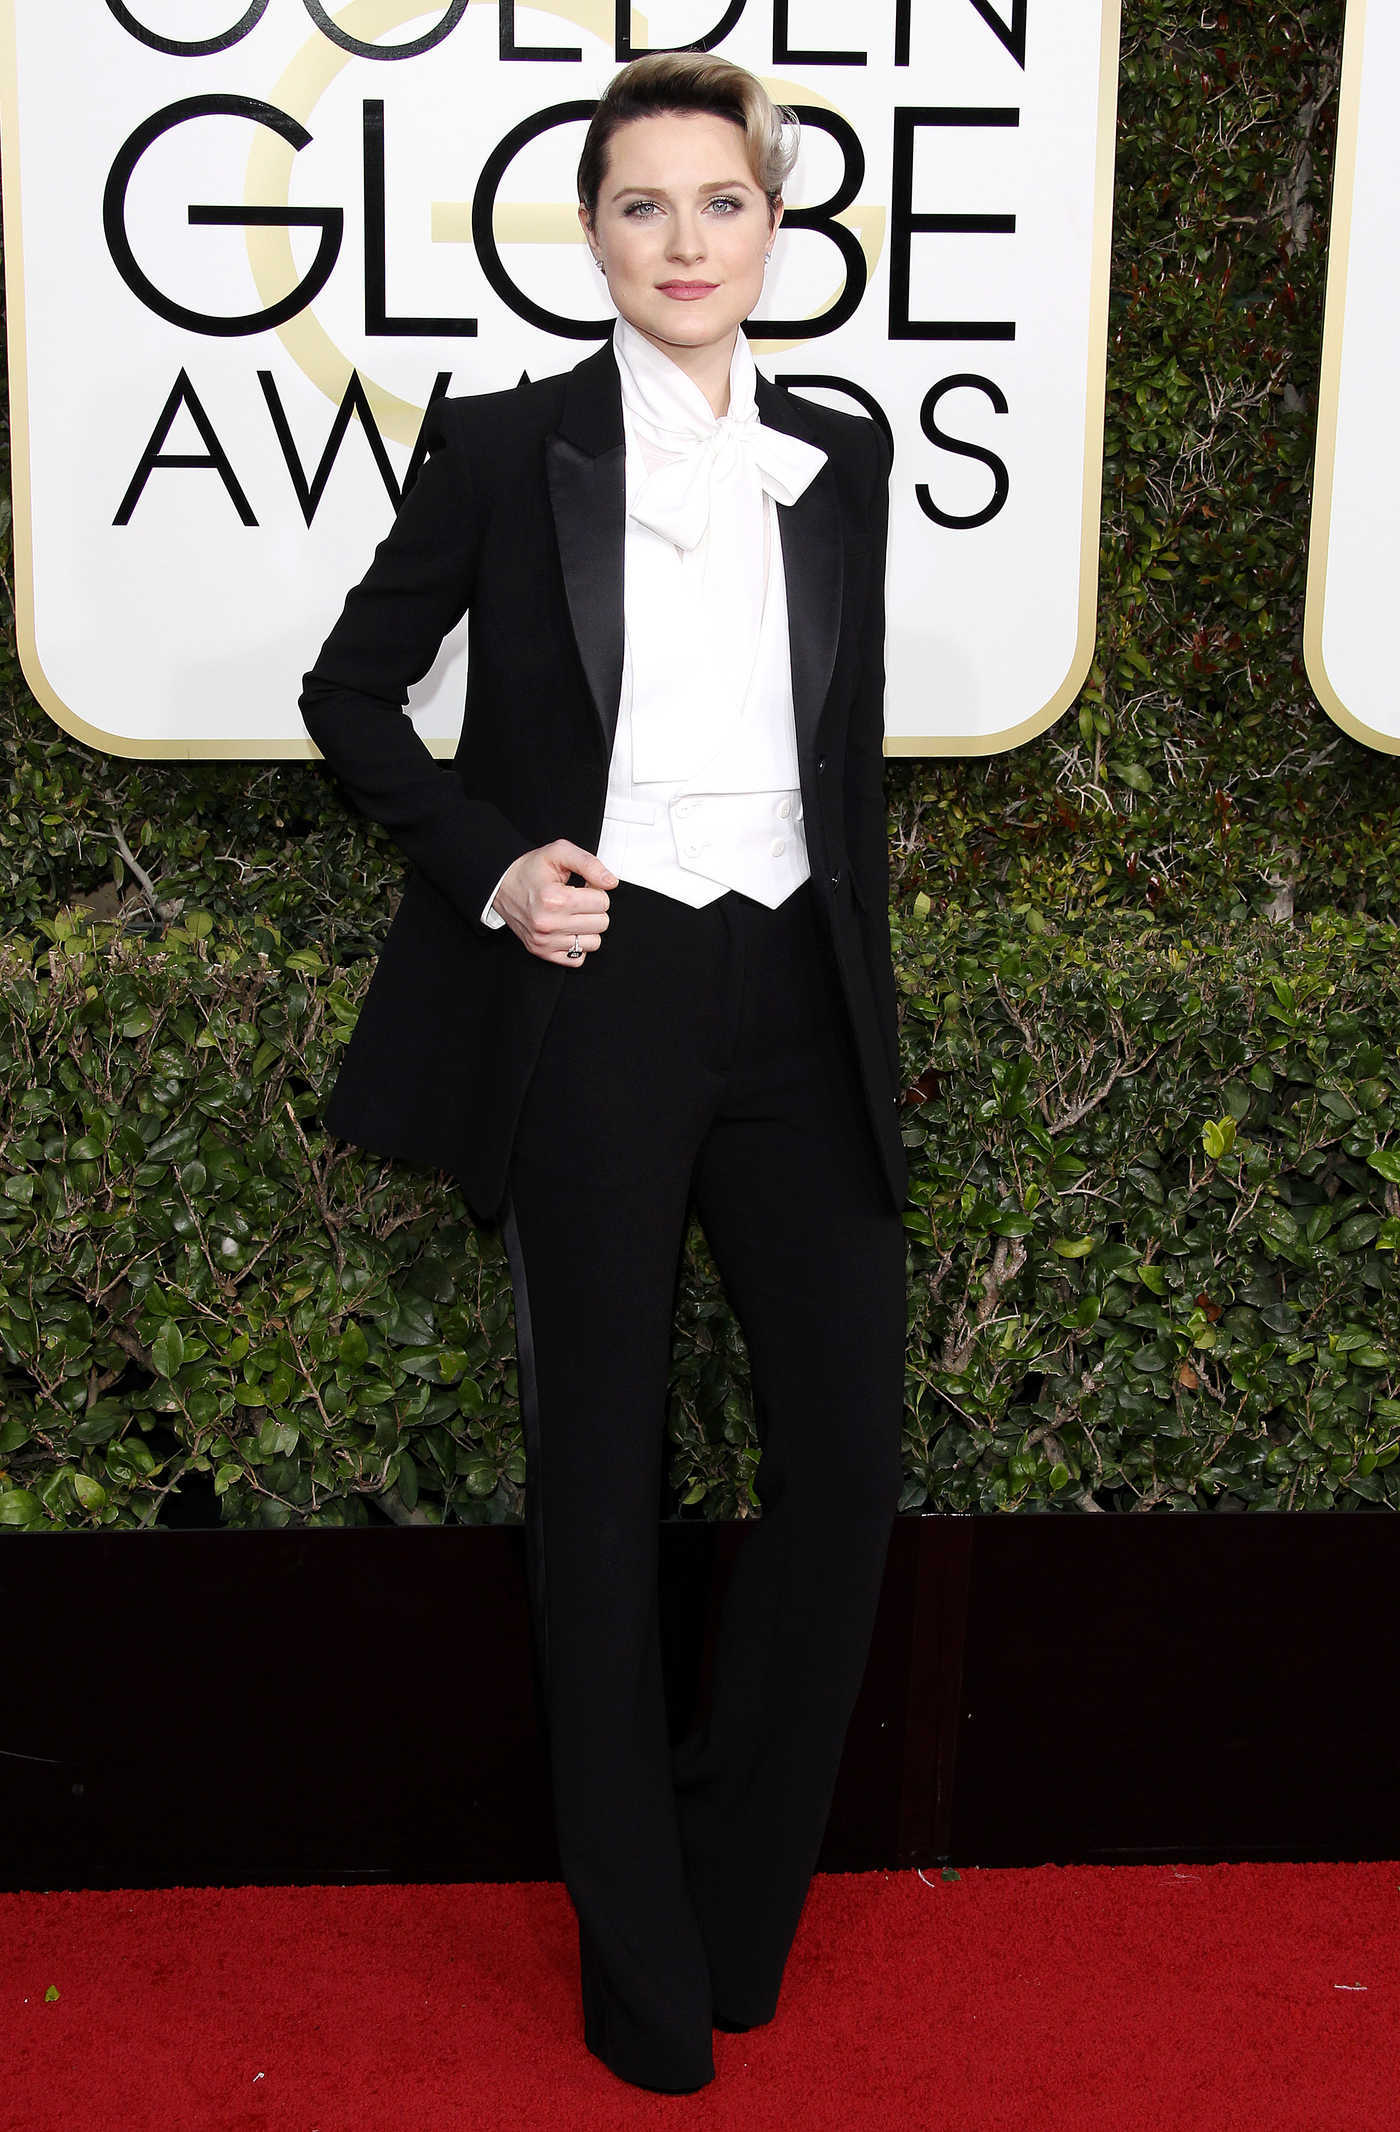 Evan Rachel Wood at the 74th Annual Golden Globe Awards in Beverly Hills 01/08/2017